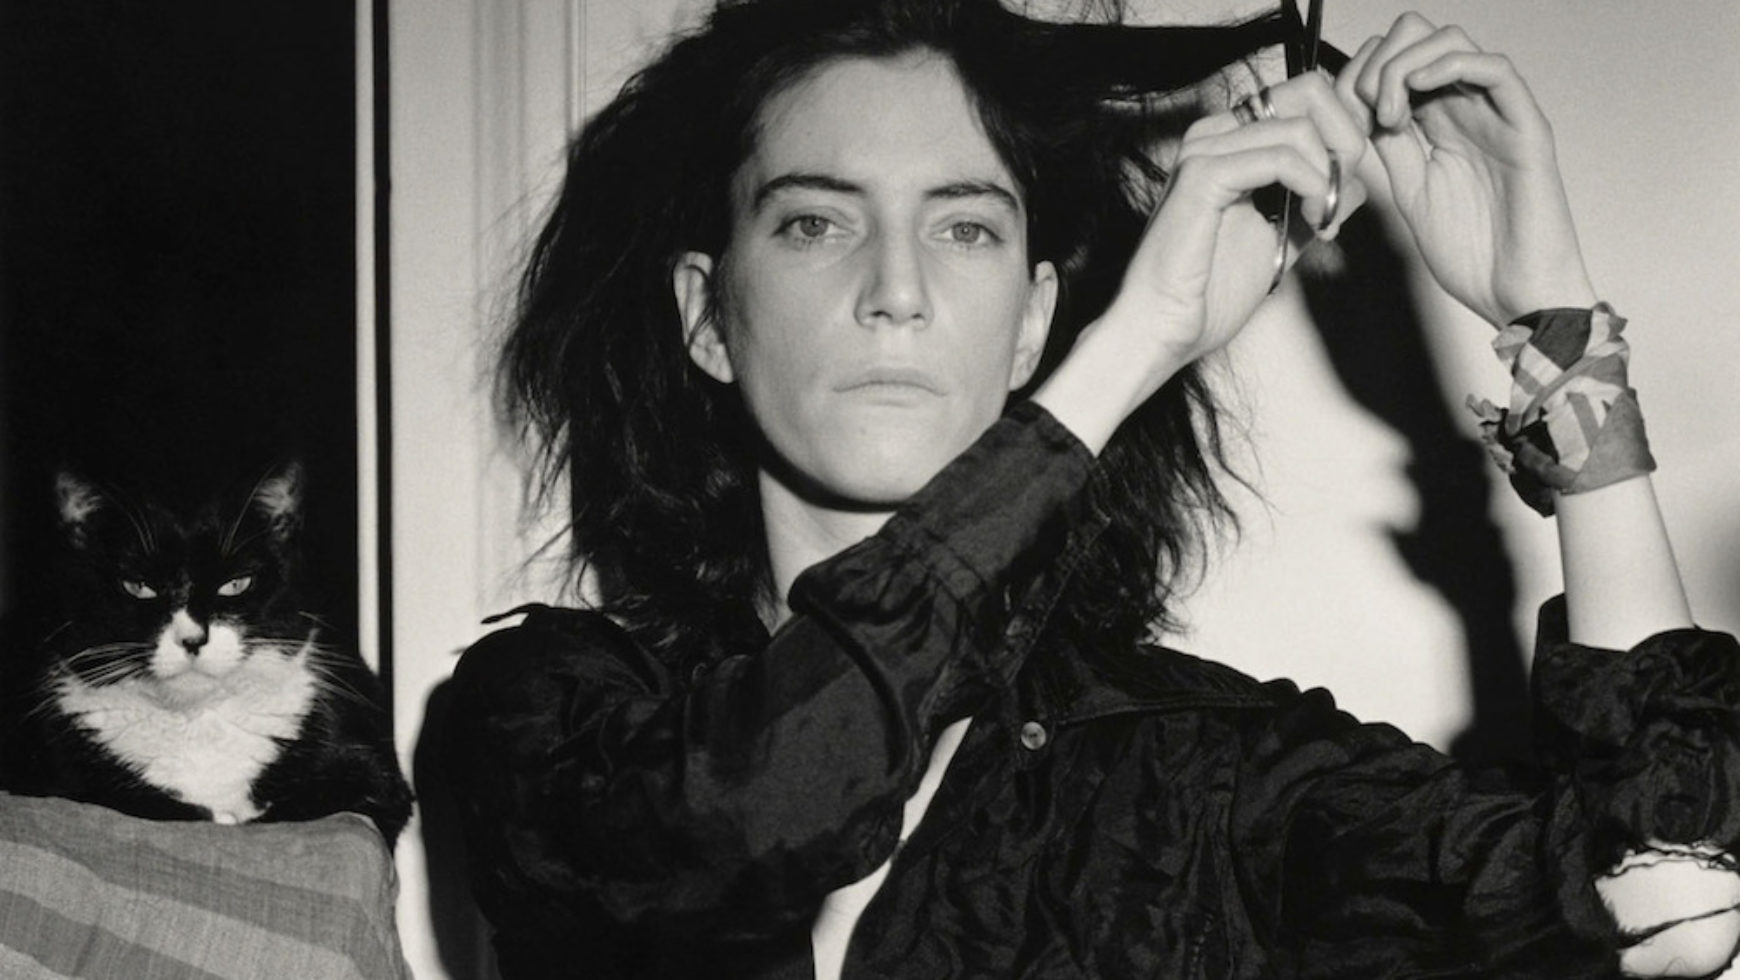 Patti Smith's Advice On Following The Road Less Traveled